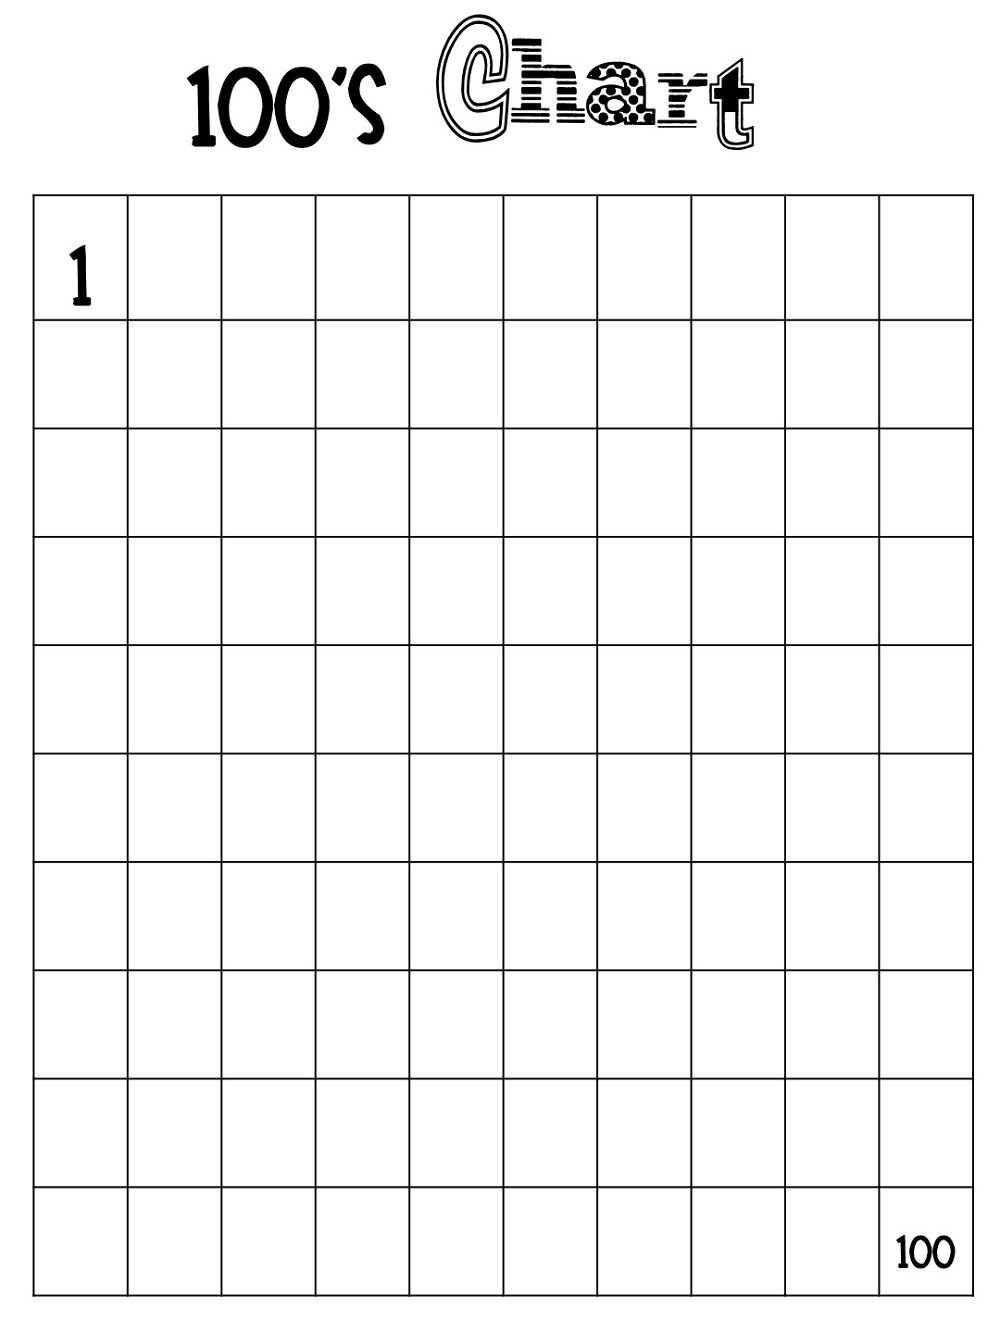 blank number chart 1-100 activity | Number chart, Math ...